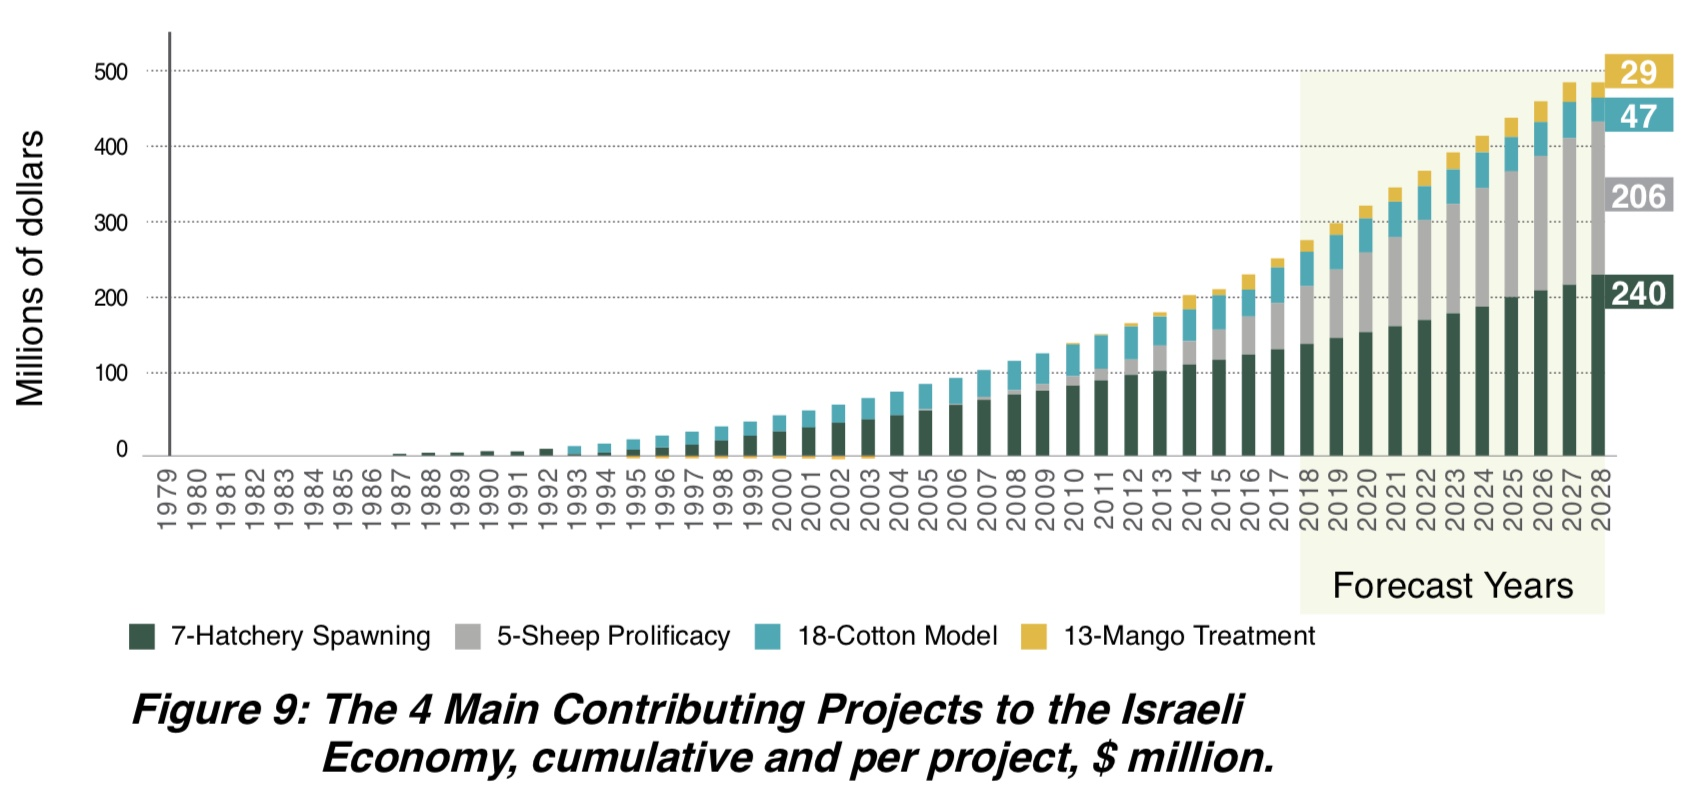 Figure 9: The 4 Main Contributing Projects to the Israeli Economy, accumulated $ million